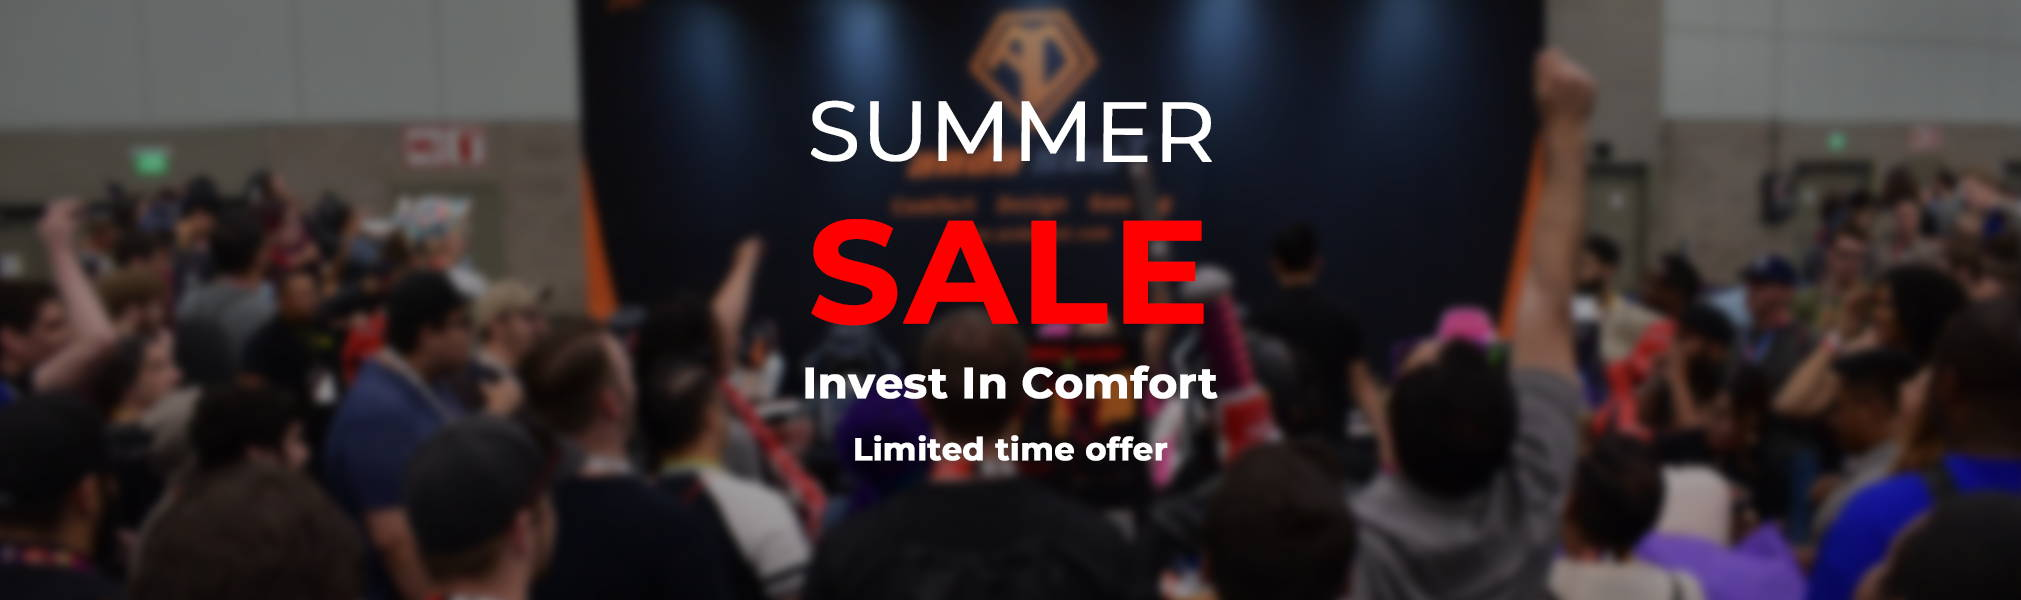 Summer Sale for gaming chair